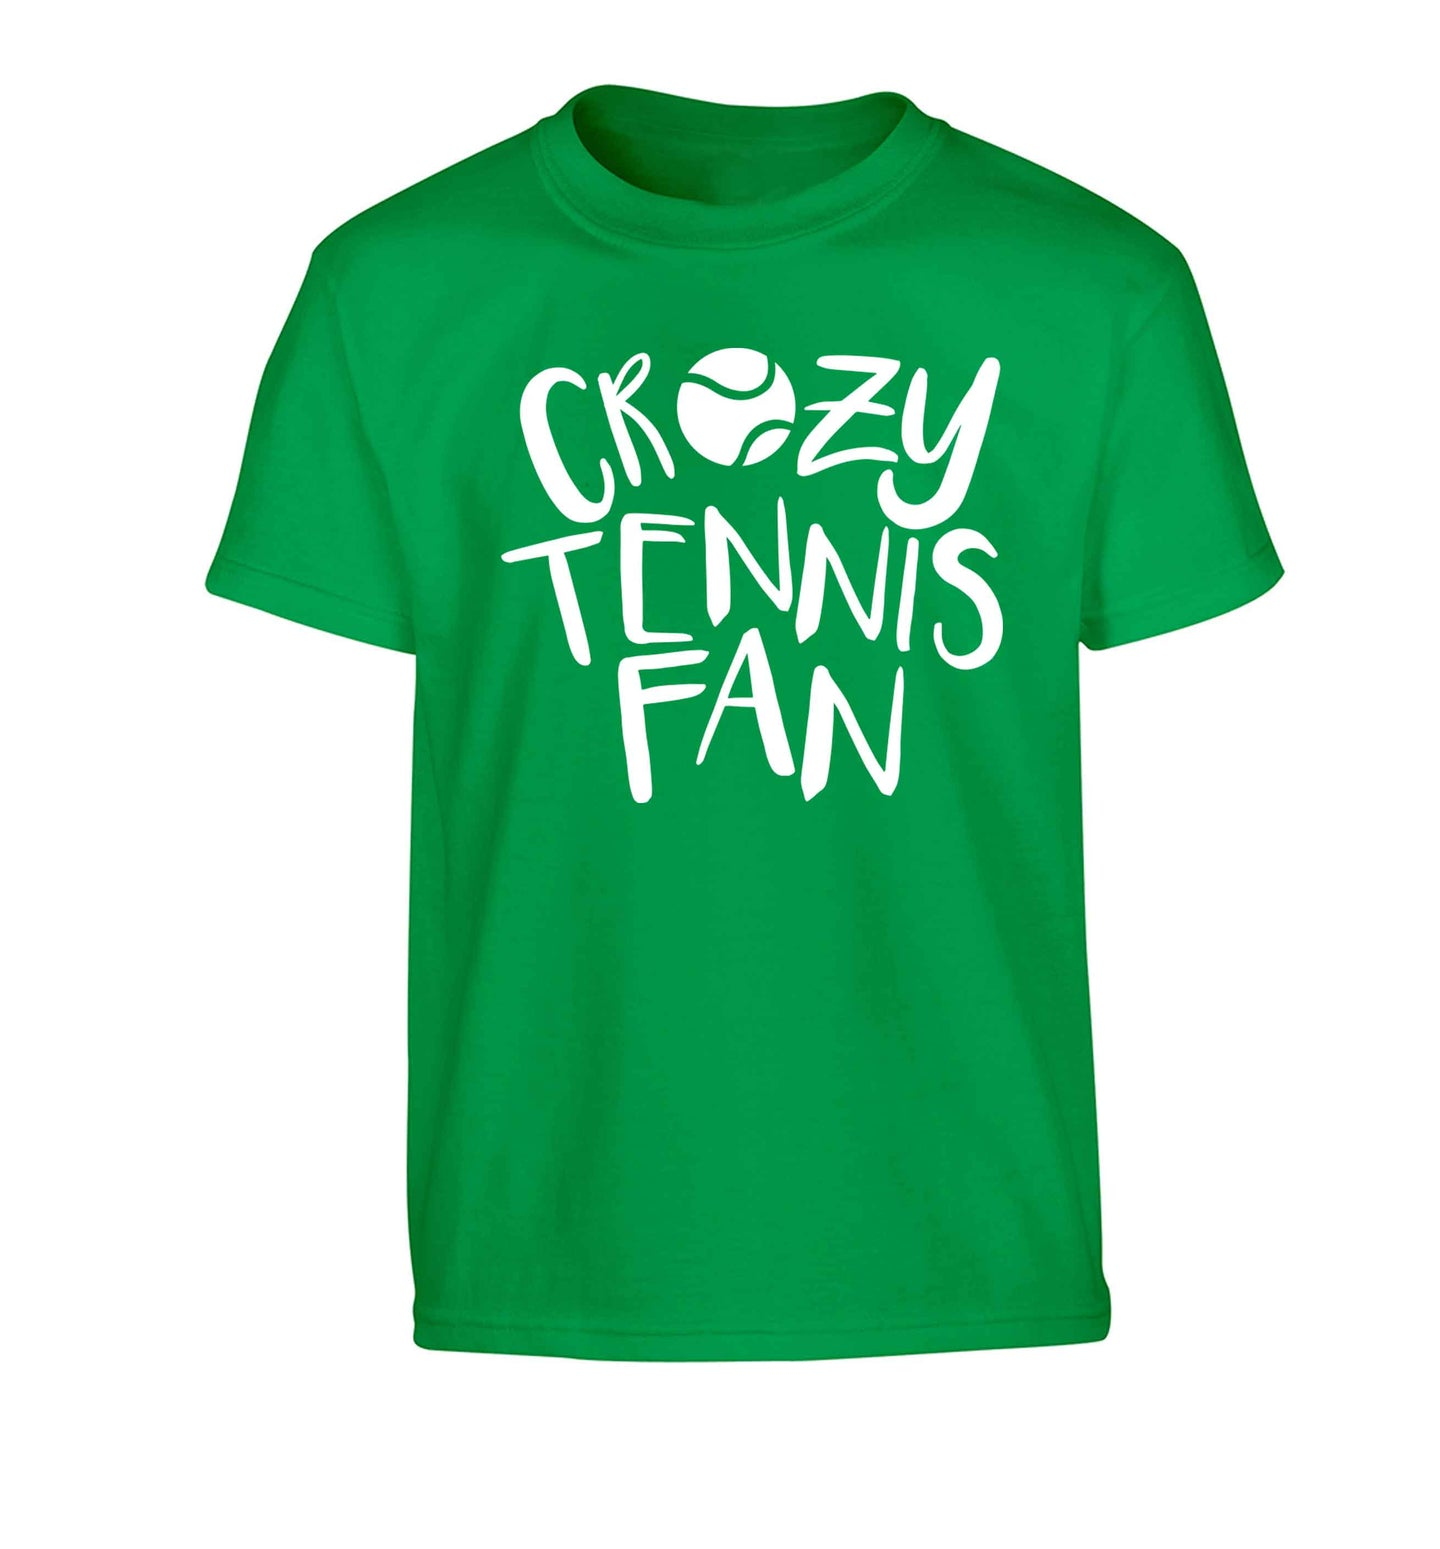 Crazy tennis fan Children's green Tshirt 12-13 Years